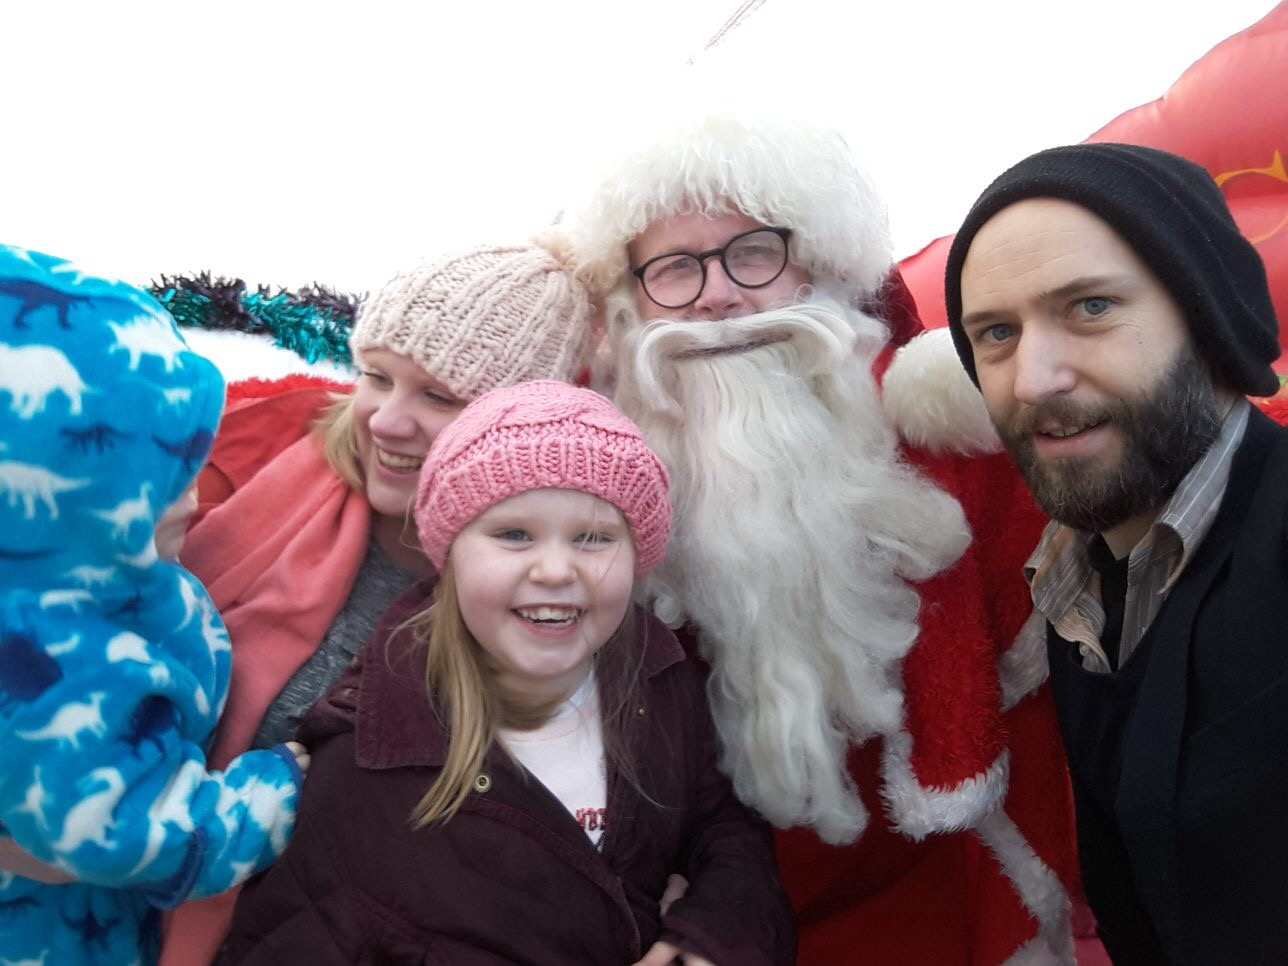 Image is a photograph of Amrick Ainley with her family, smiling for a group photograph with Father Christmas